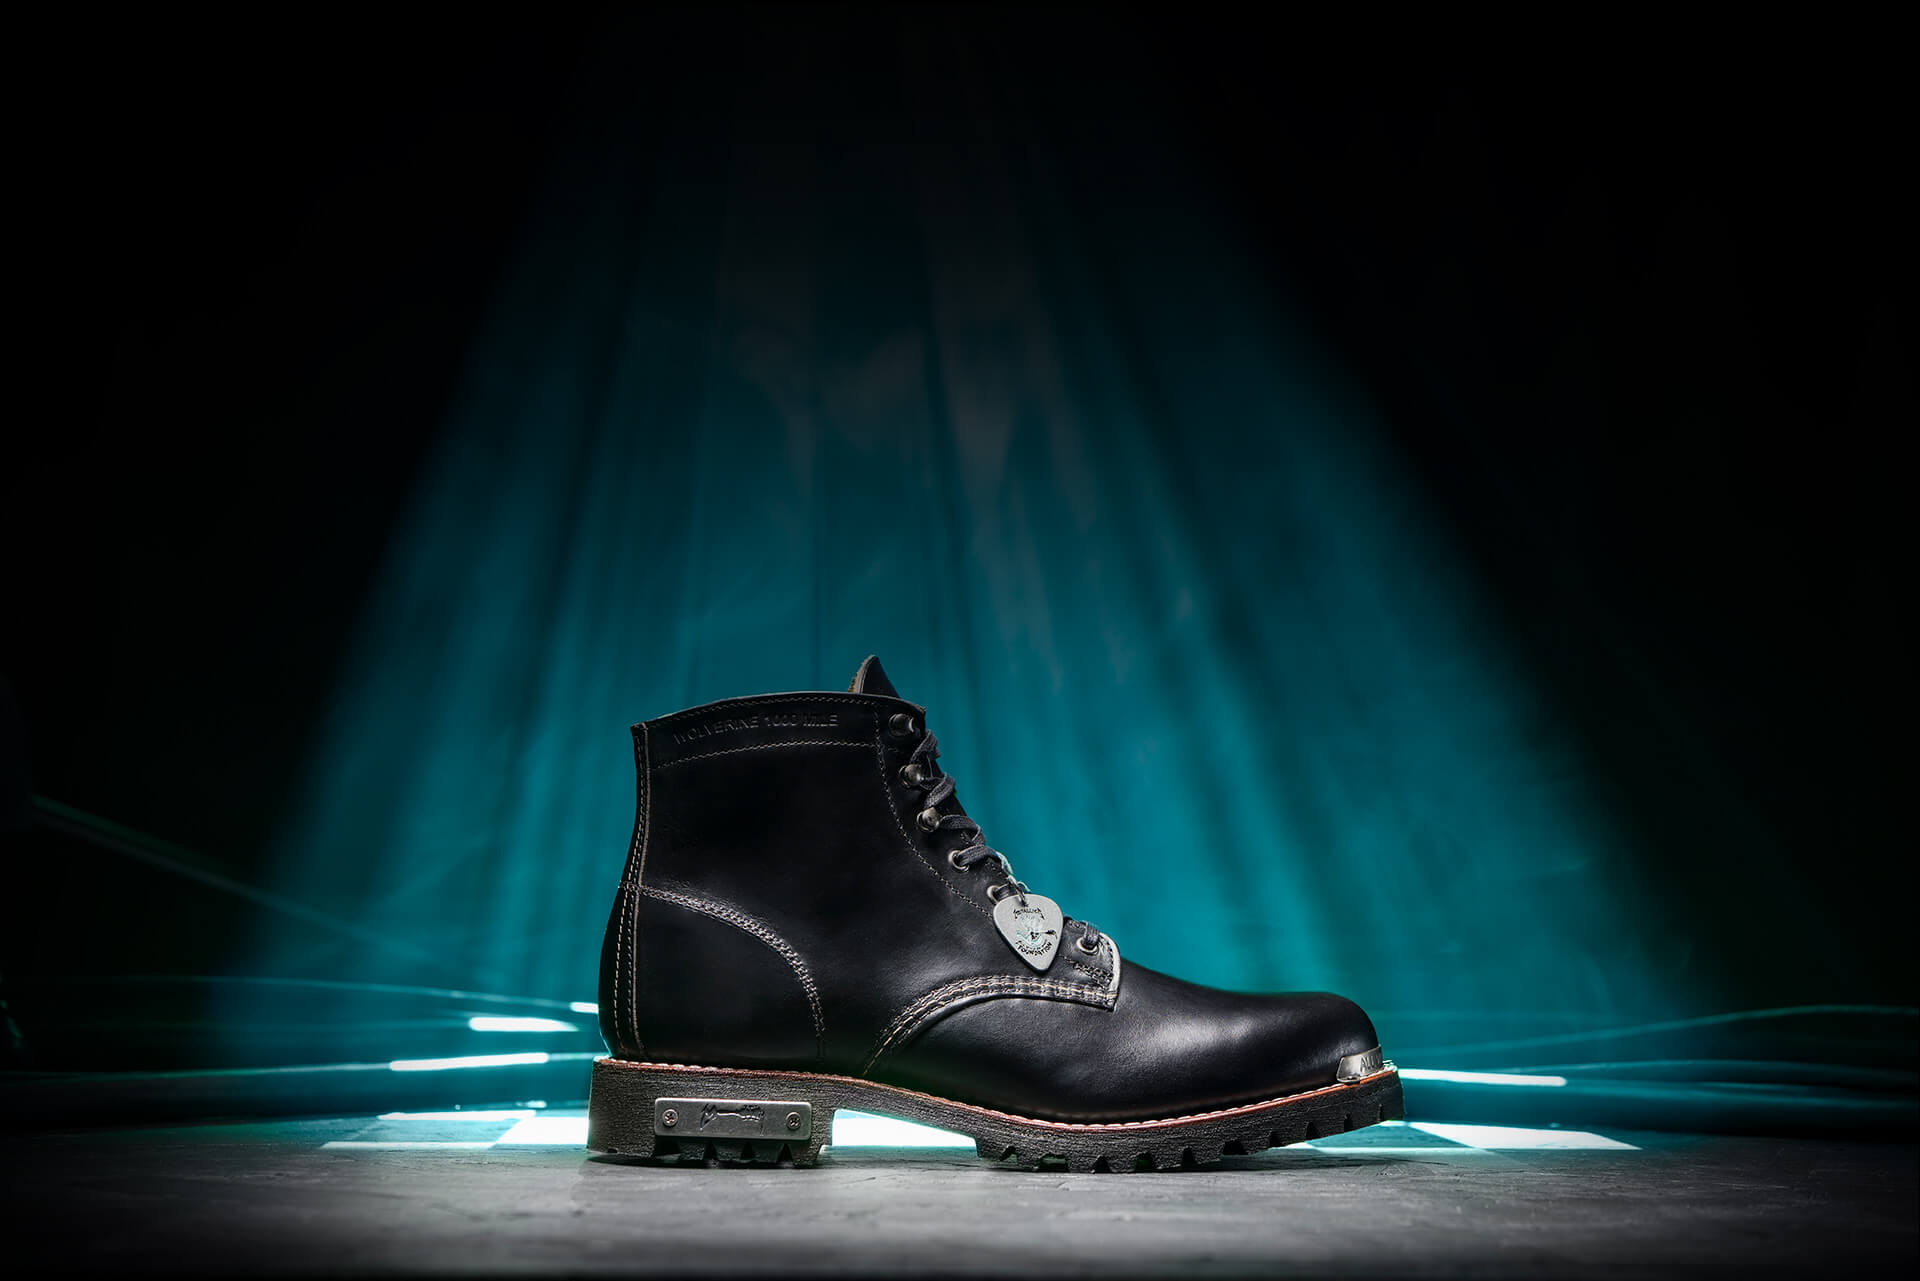 Axel boot on stage in a blue spotlight and dry ice.